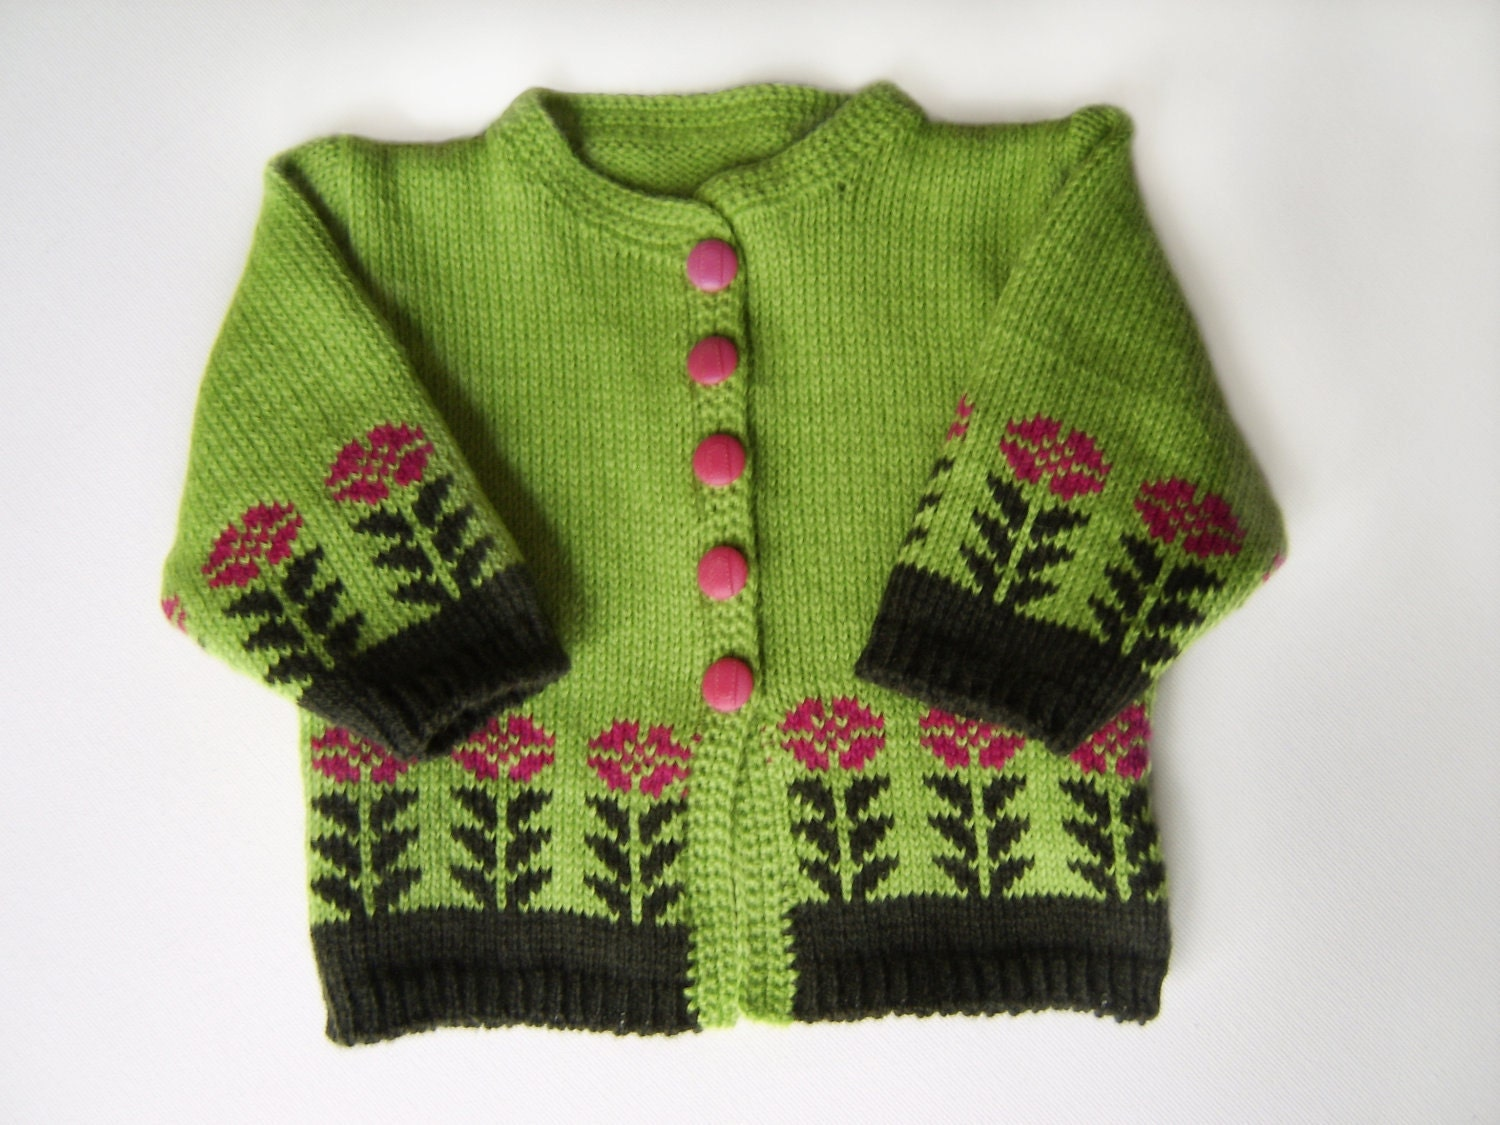 Knitted Baby Cardigan - Green, 0 - 3 months - SasasHandcrafts